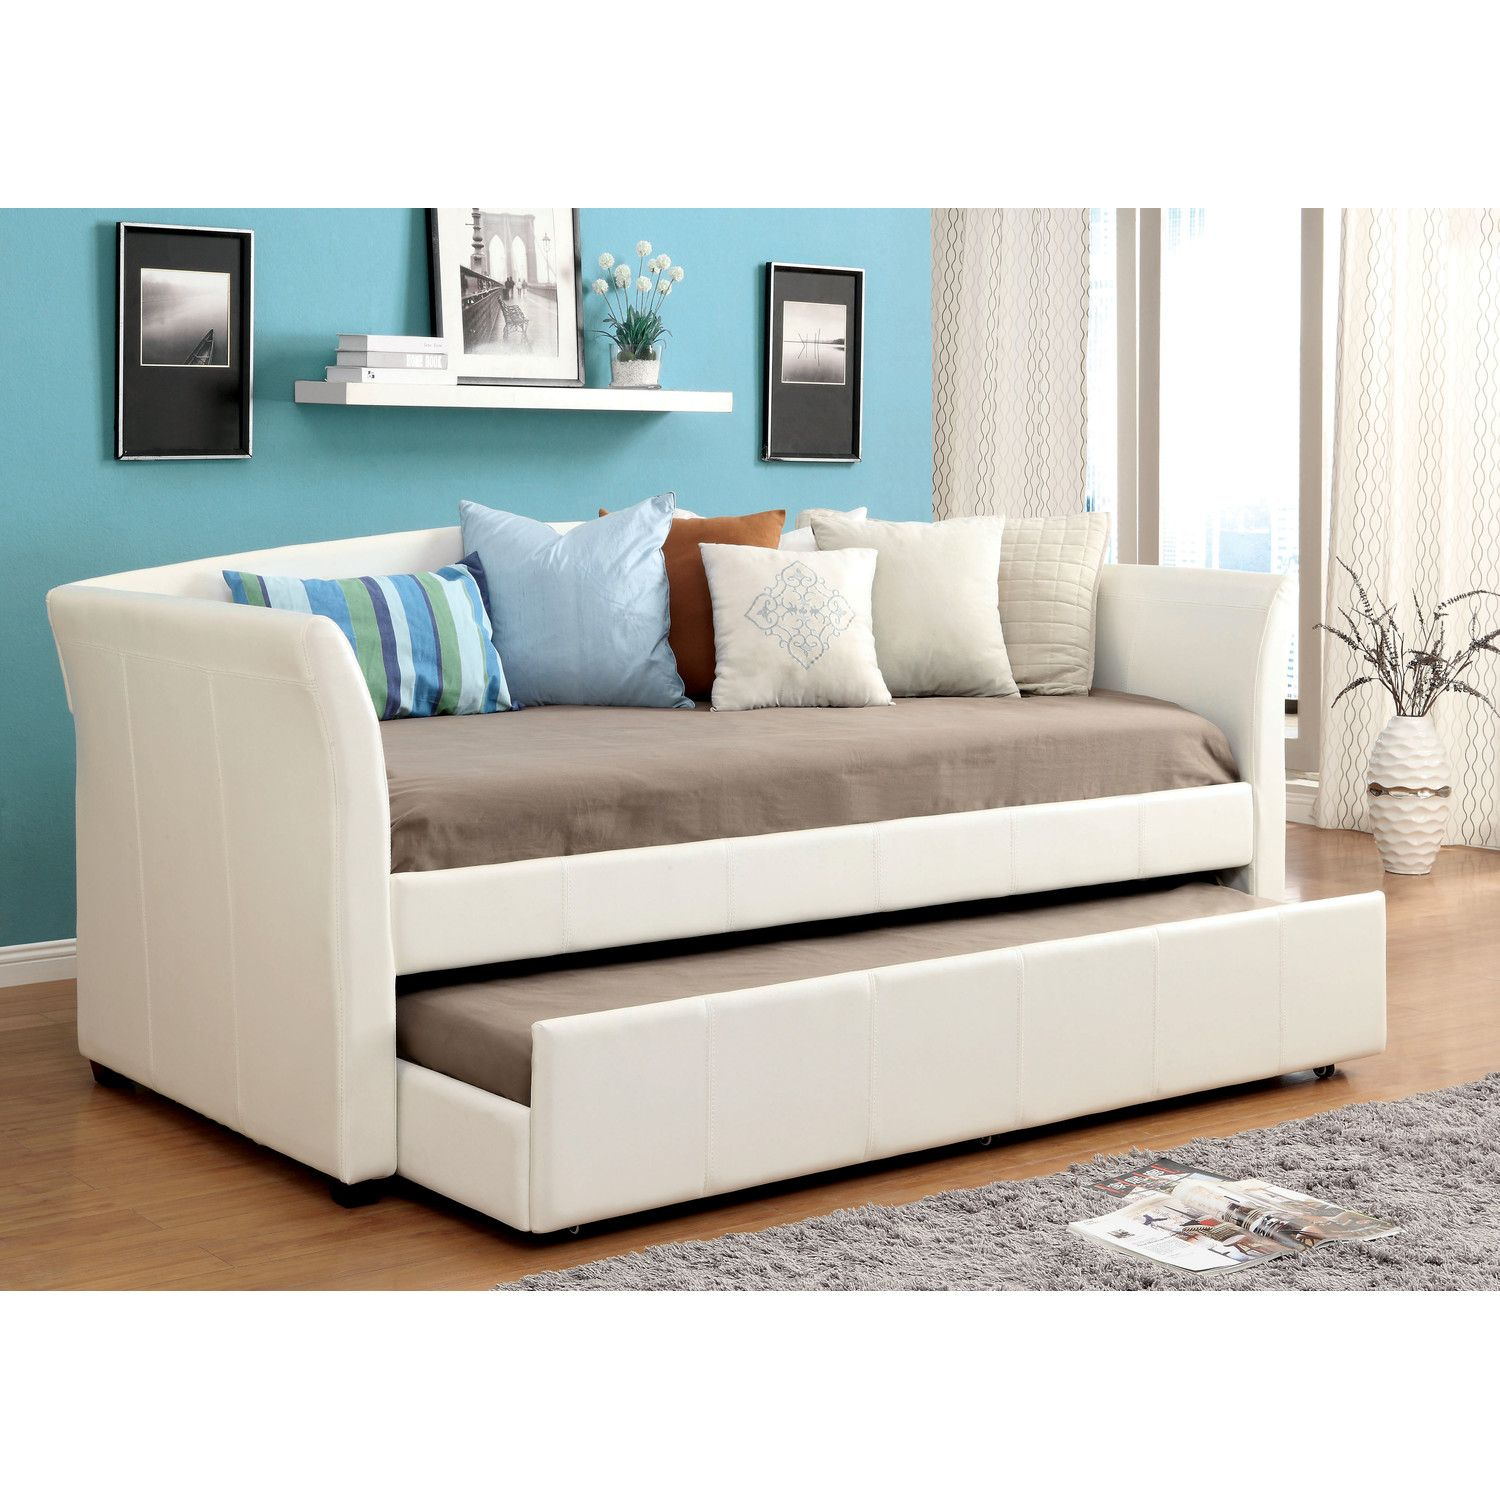 Hokku Designs Roma Daybed With Trundle On Back Design And Style